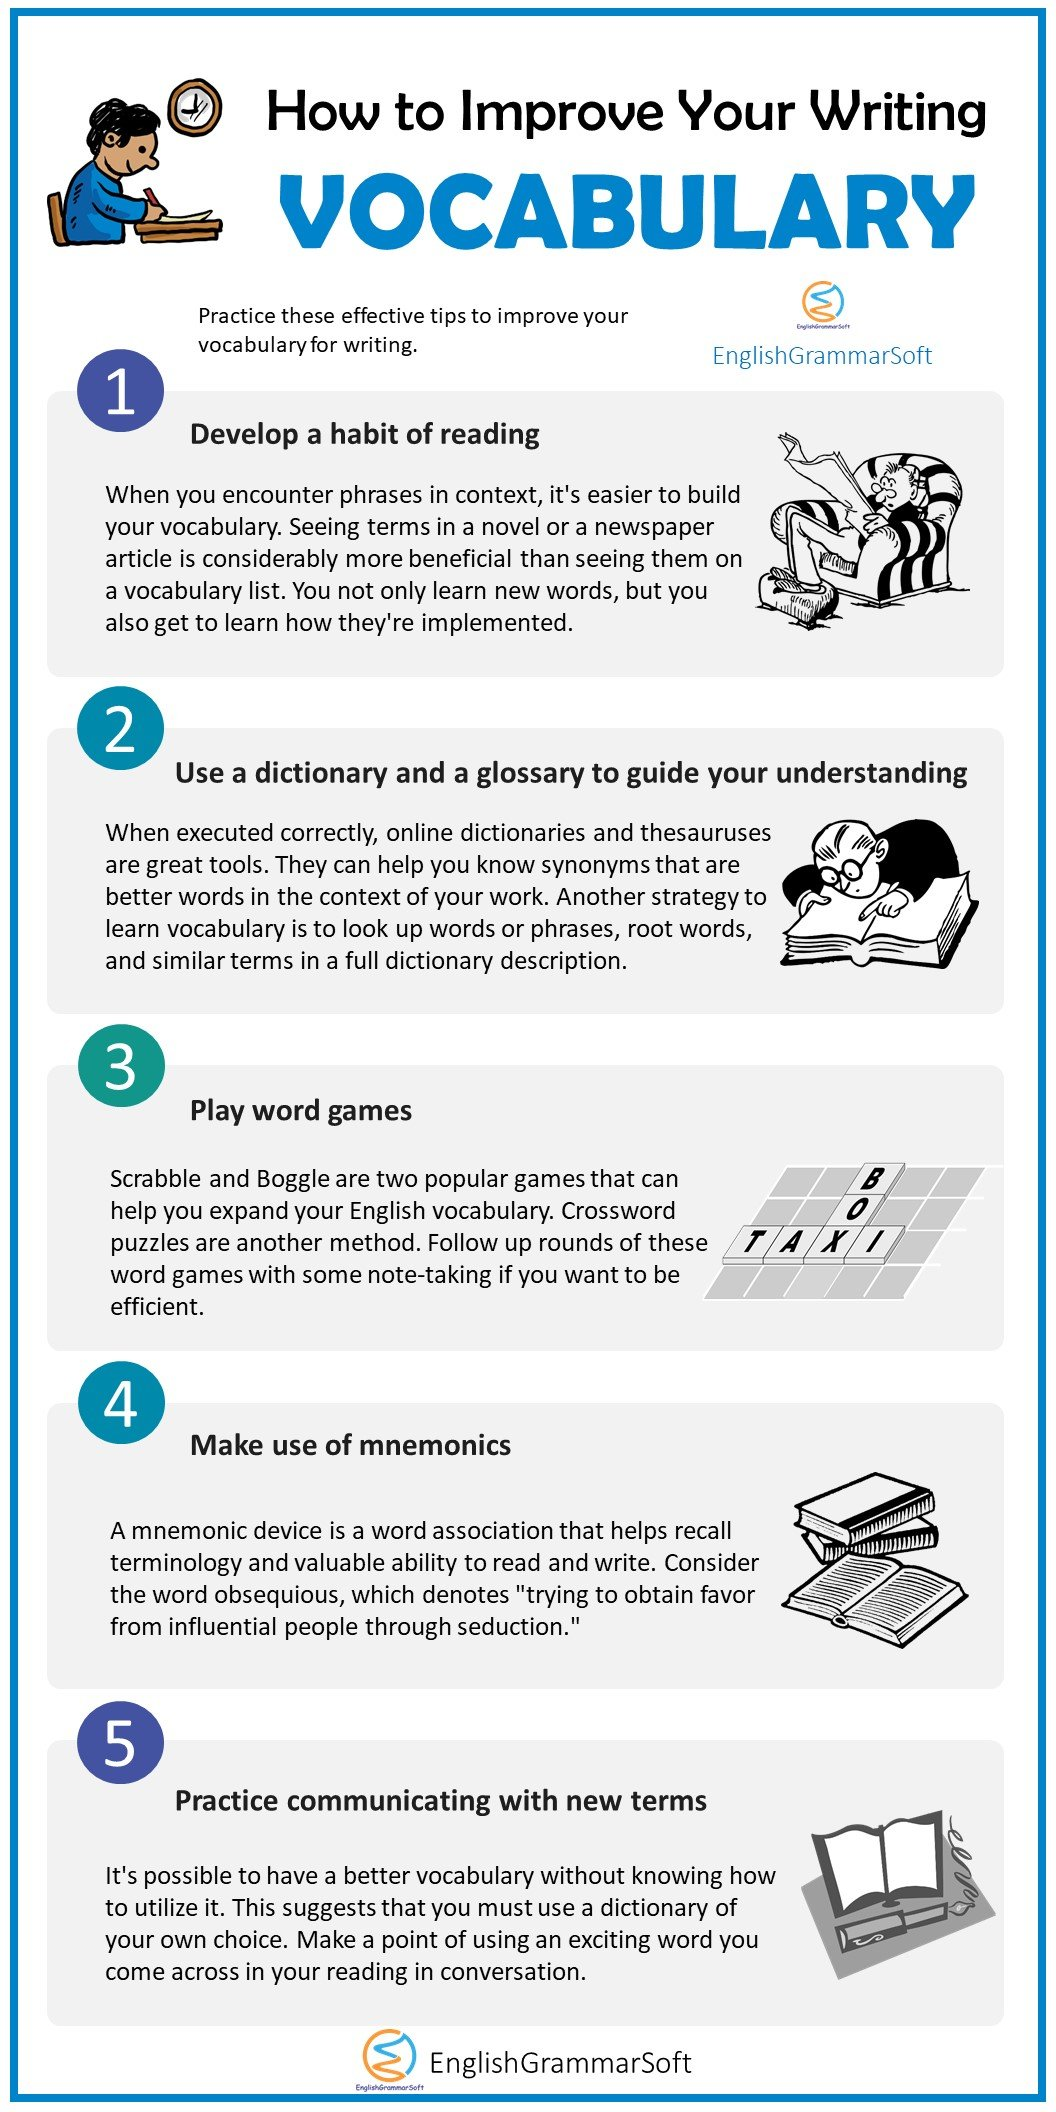 How to Improve Your Writing Vocabulary in 5 Effective Ways